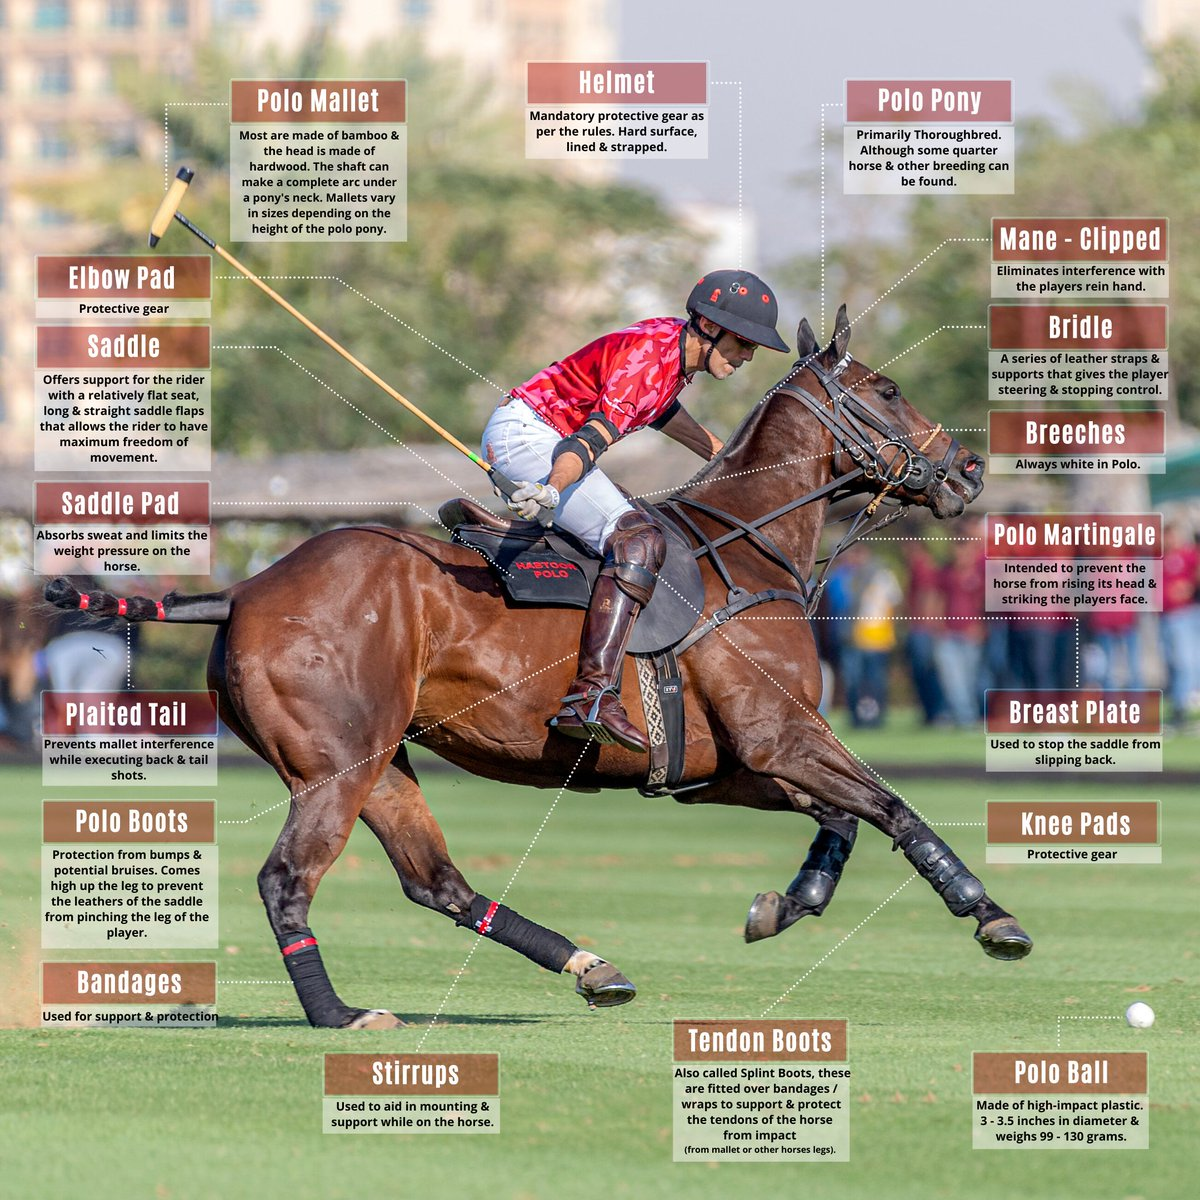 All geared up! Polo players & their ponies work together & must be fully equipped in order to play their best at each game. Here's a quick guide for those who are curious to learn more 😉  #Polo101 #SportOfKings #PoloGear #Safety #PoloPony #PoloPlayers #TackEquipment #PoloBasics https://t.co/jgNo8GMudx